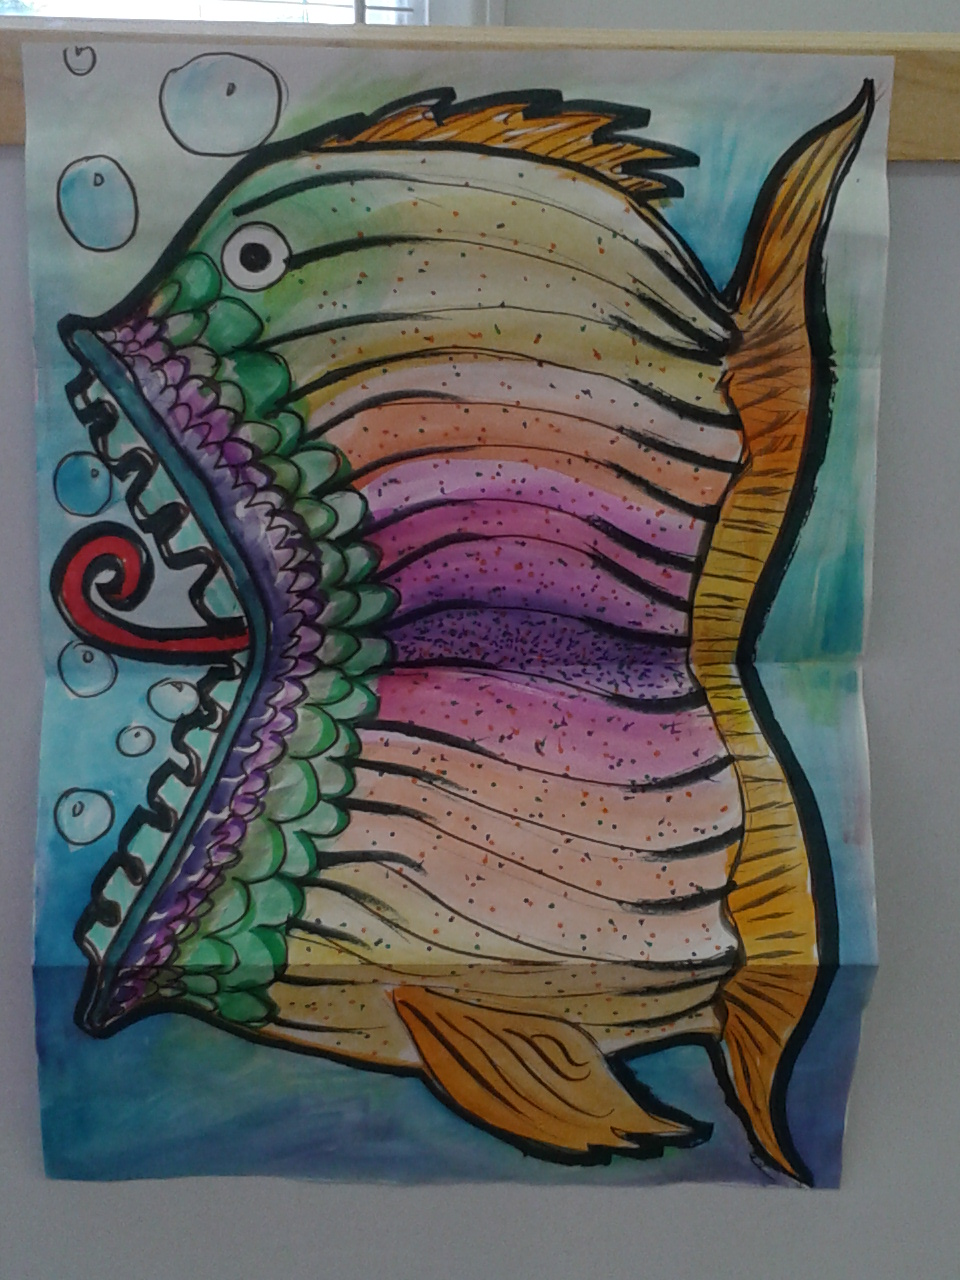 Expanded Fin-Tastic Mutating Fish #2